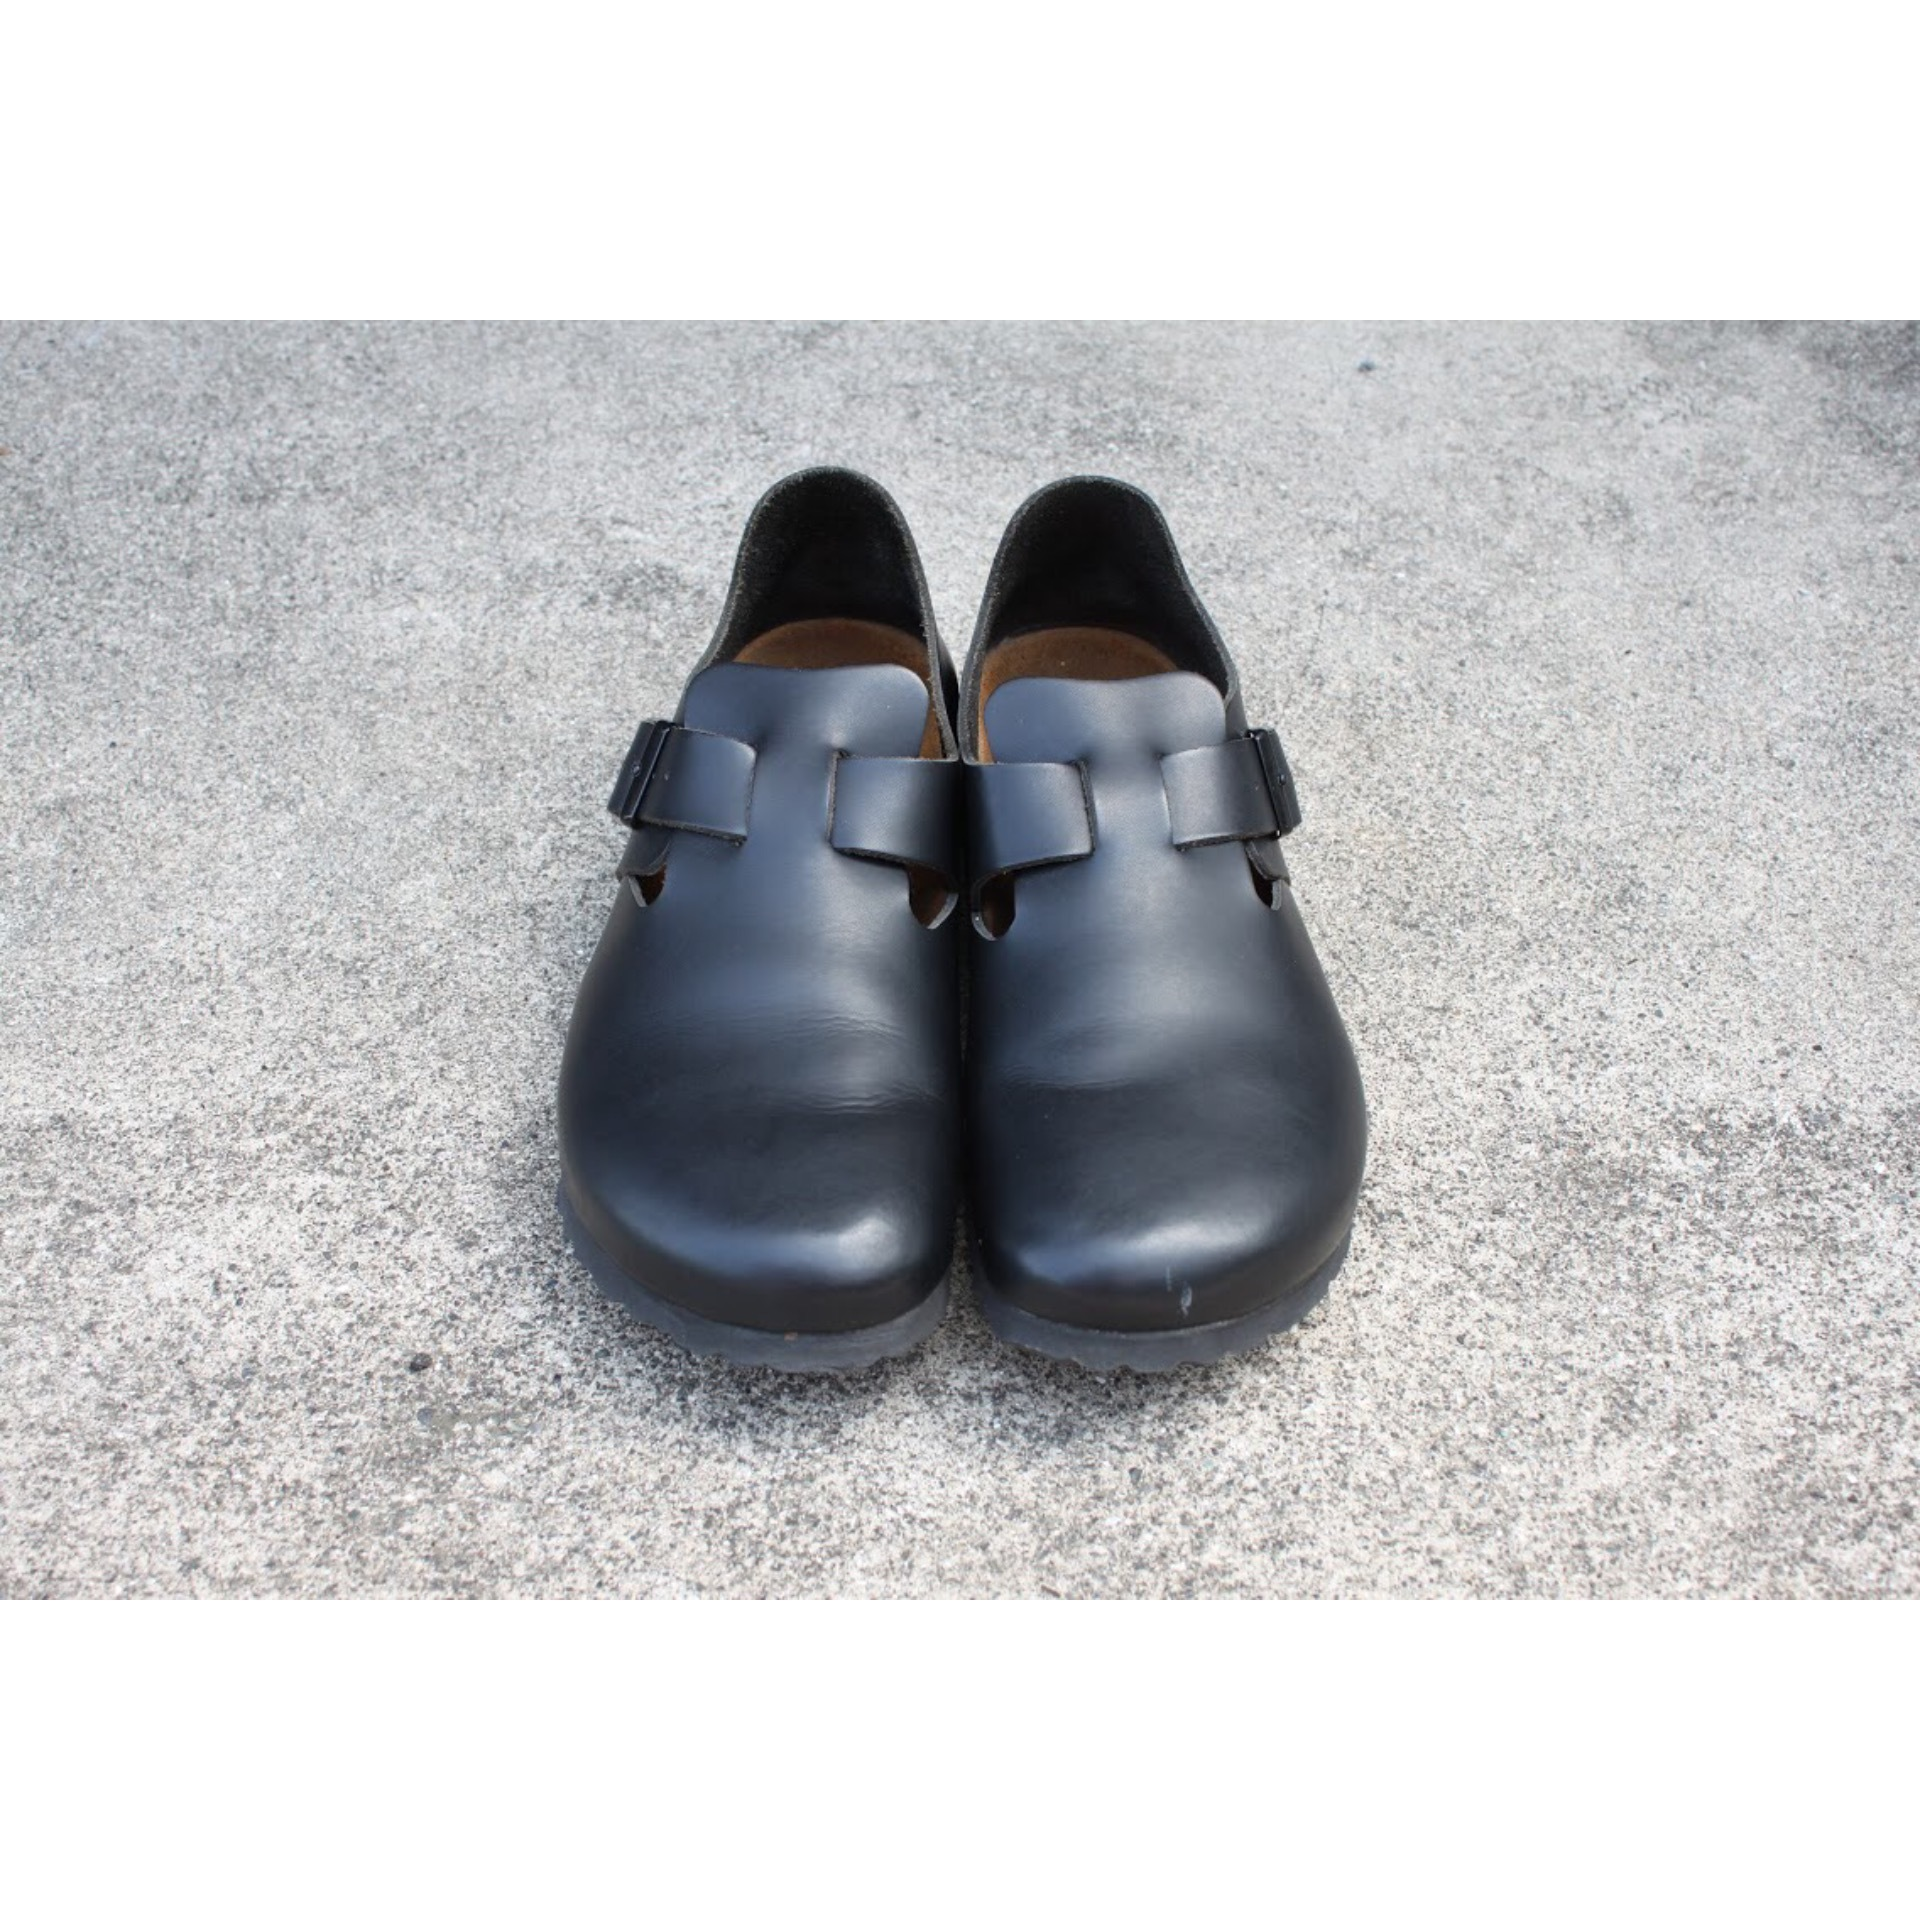 Vintage close-toe strap shoes by BIRKENSTOCK